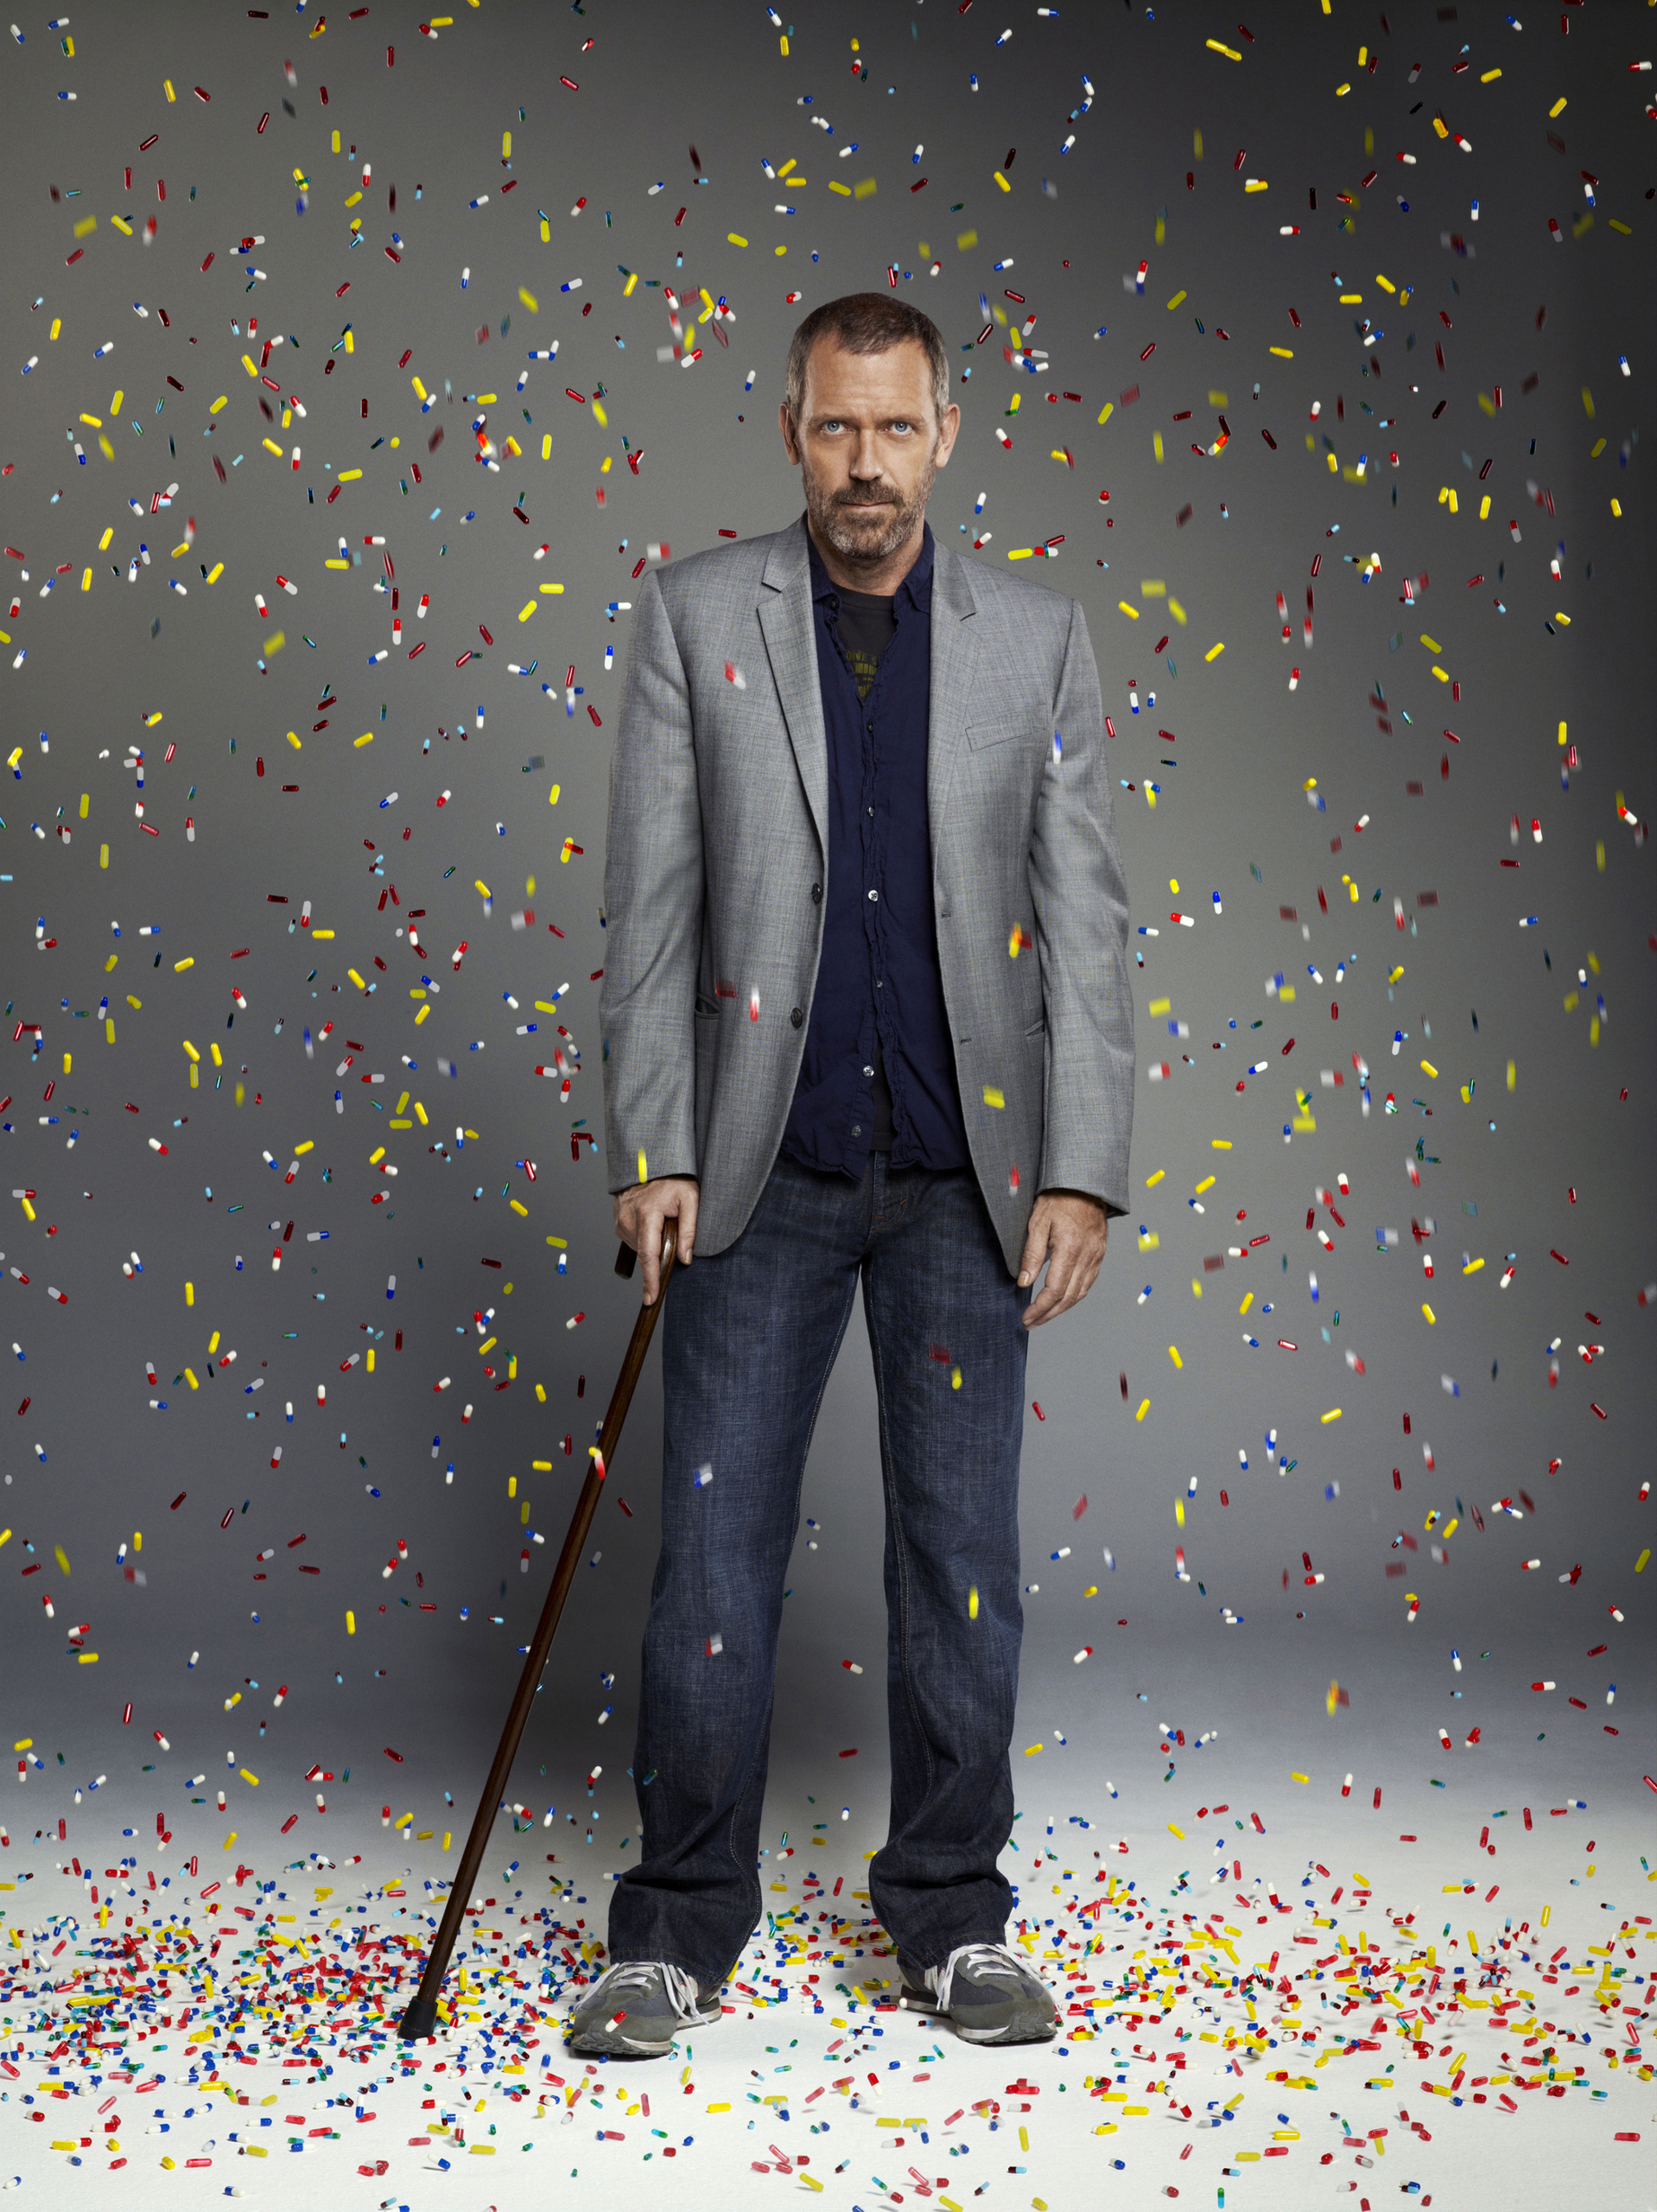 House M.D. - Season 1 House M.D is an American TV medical drama centers on Dr. Gregory House, a pain medication-dependent, unconventional, misanthropic medical genius who is the captain of a team of diagnosticians at the fictional Princeton – Plainsboro Teaching Hospital in New Jersey.